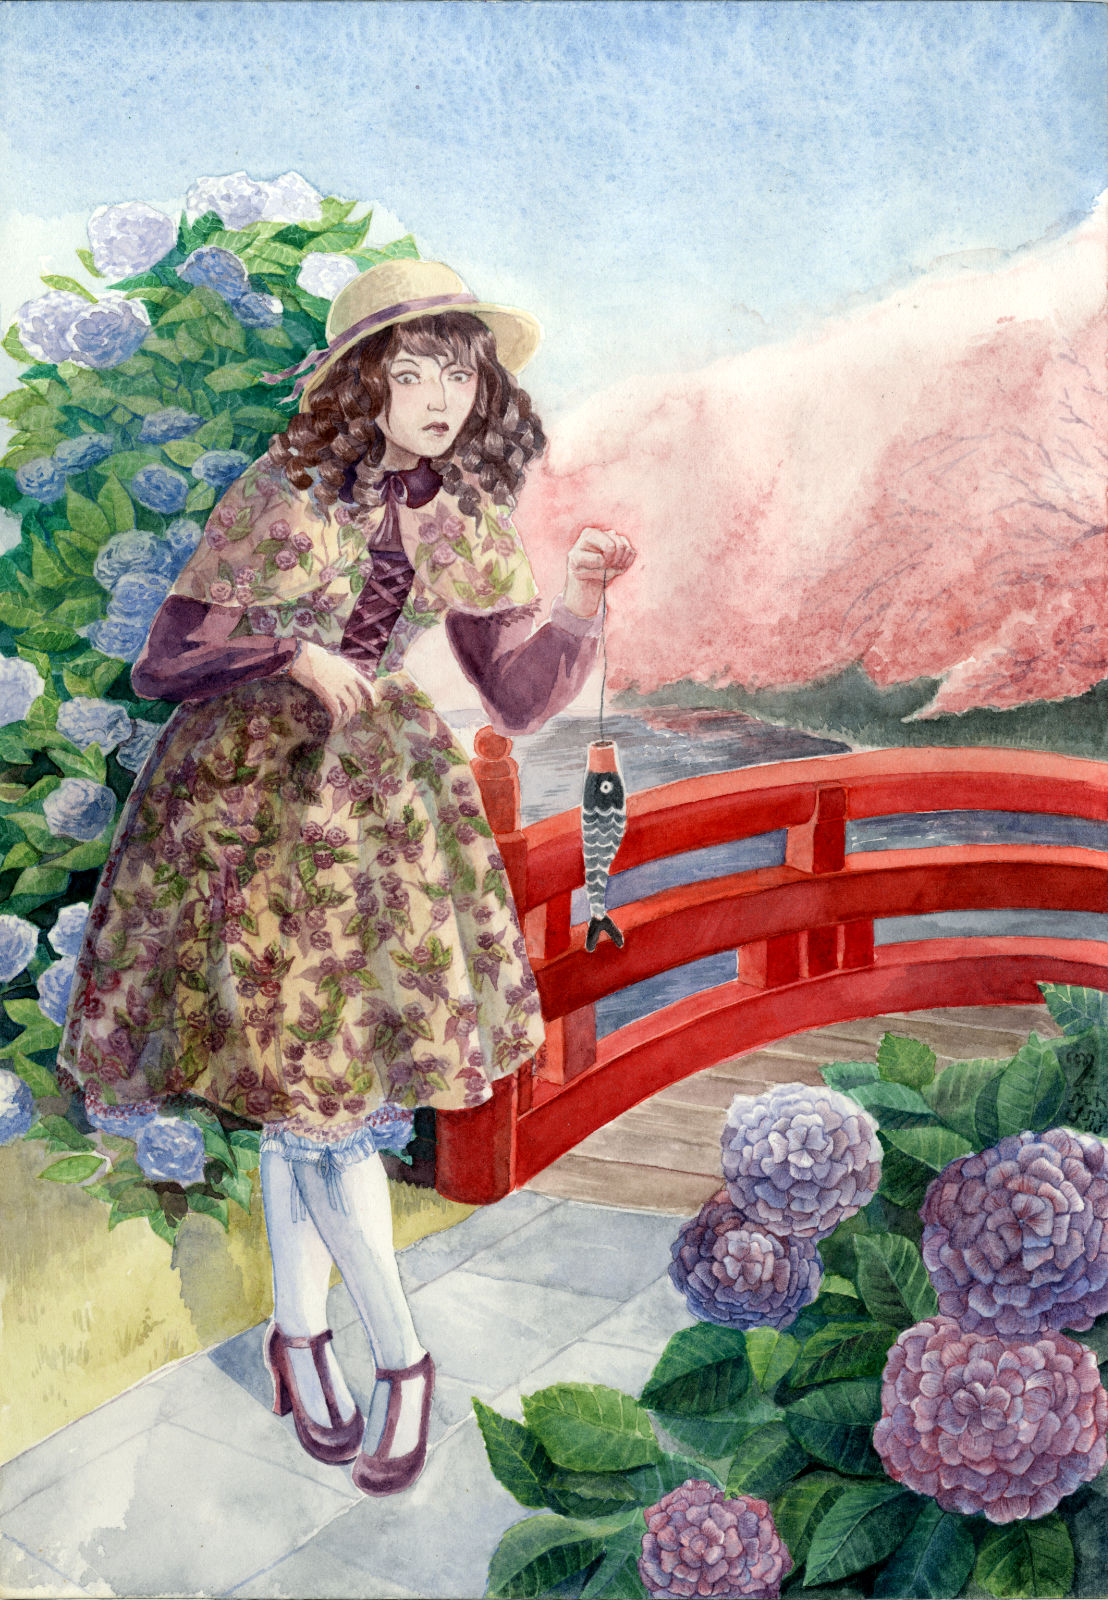 A classic lolita in Japan is holding a paper koi, japanese symbol for boys, before a background setting consisting of a red bridge, hydrangeas, and cherry blossoms.